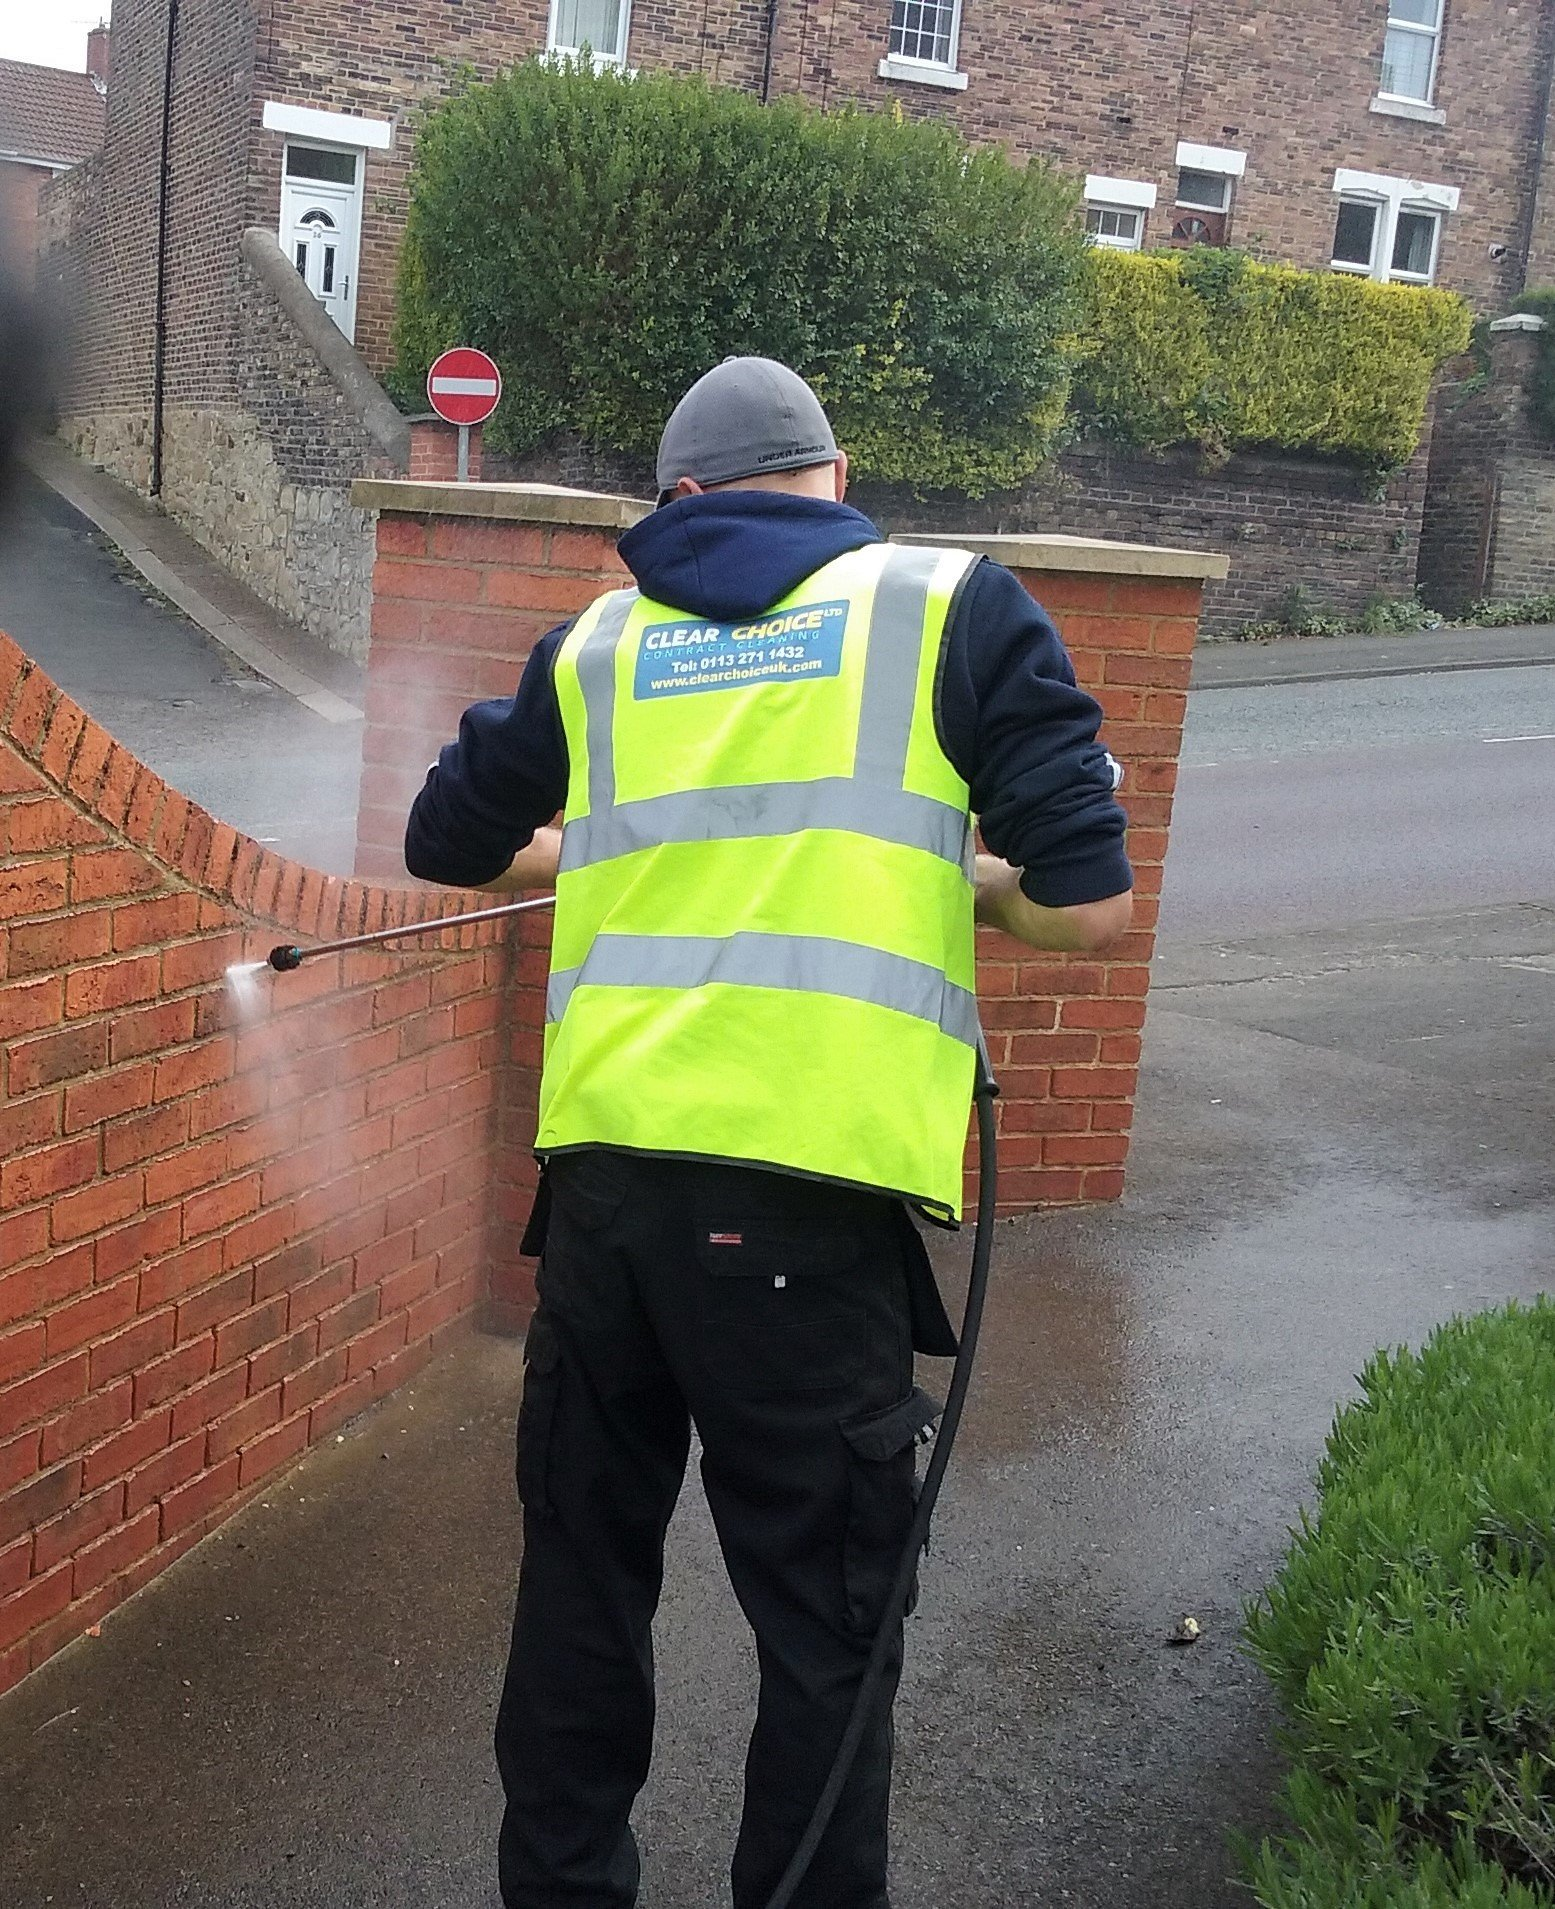 Clear Choice graffiti removal services